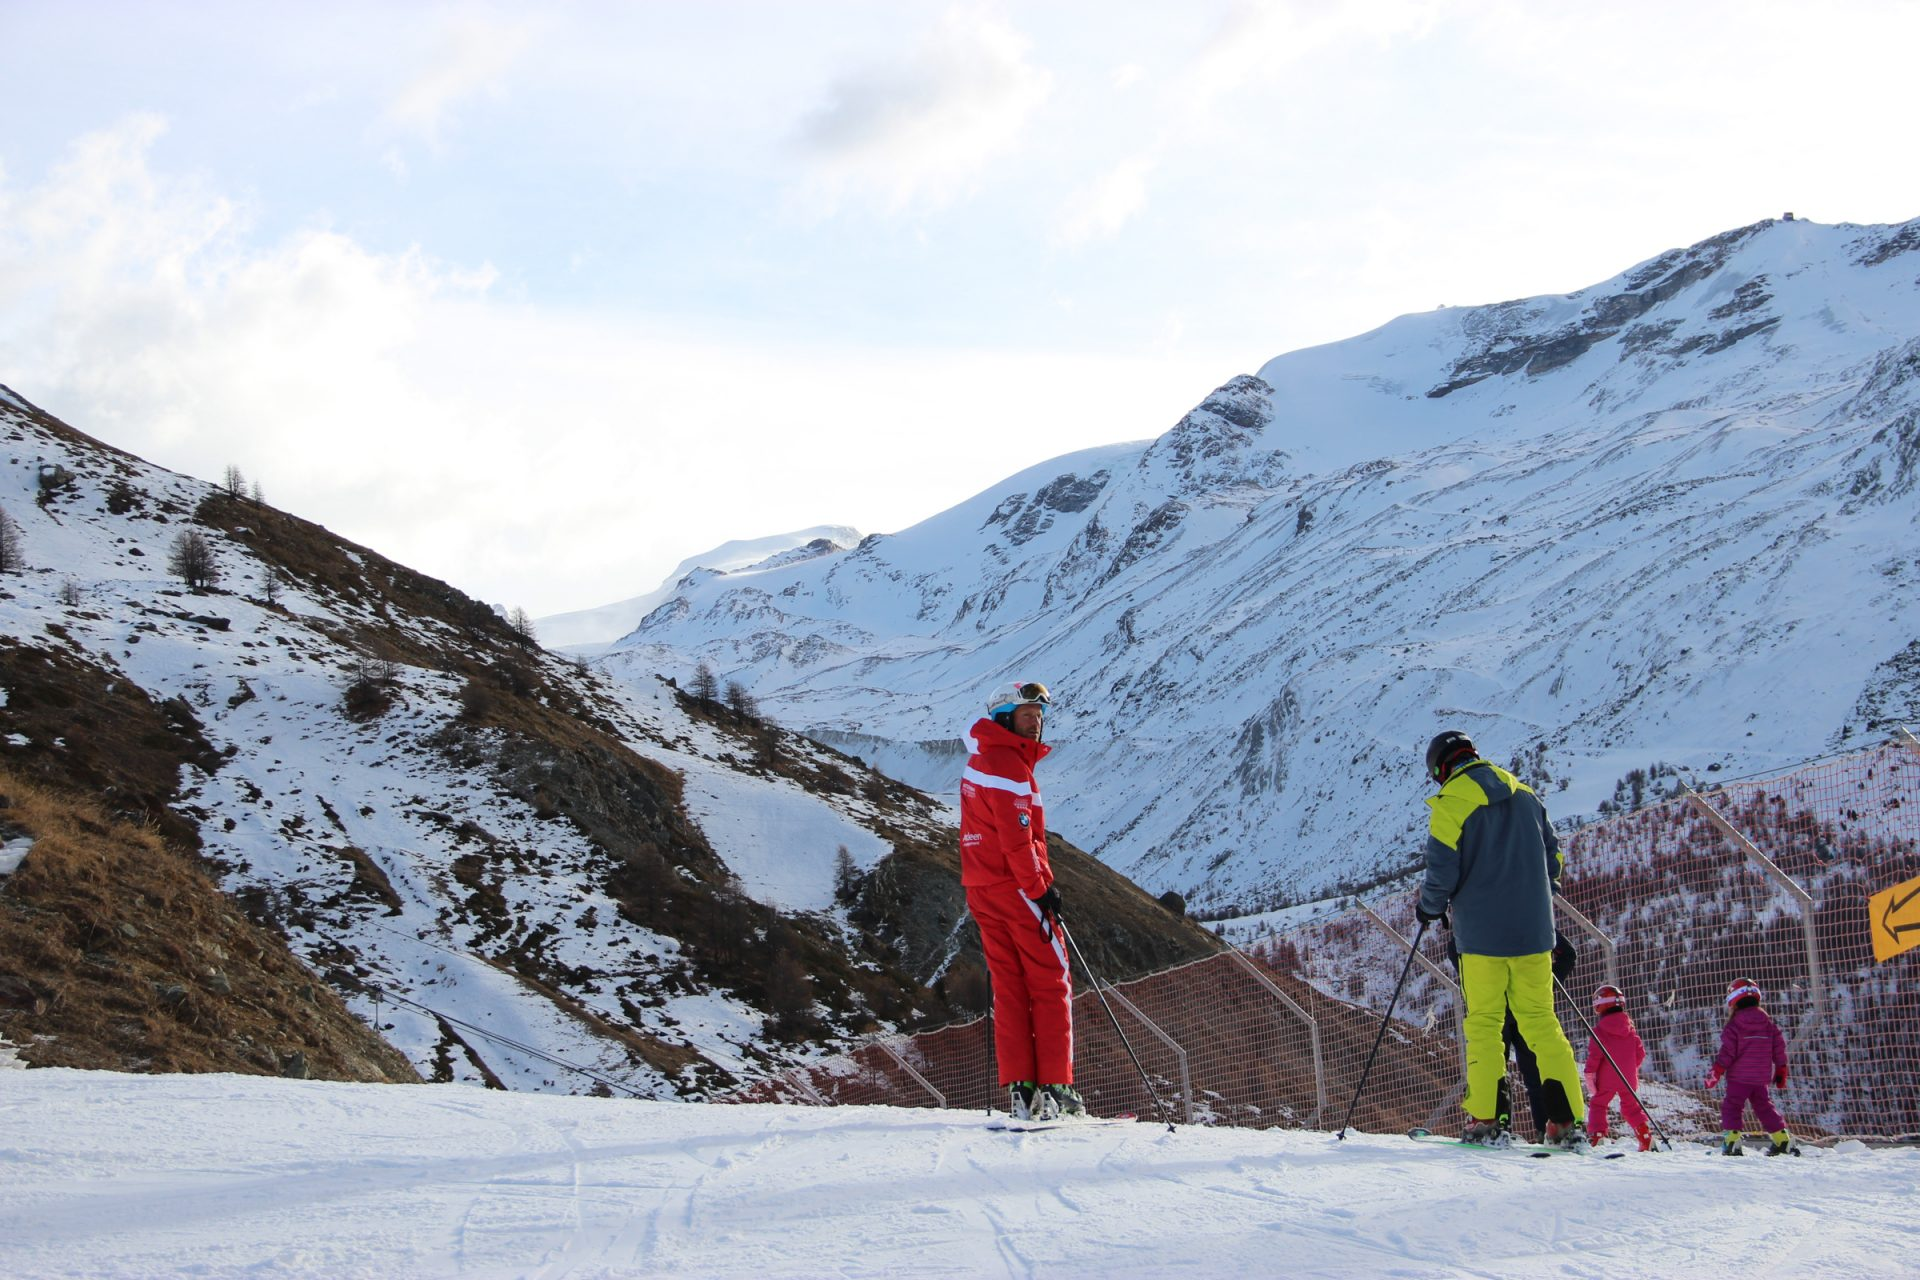 Skiers Standing on Mountain Slope